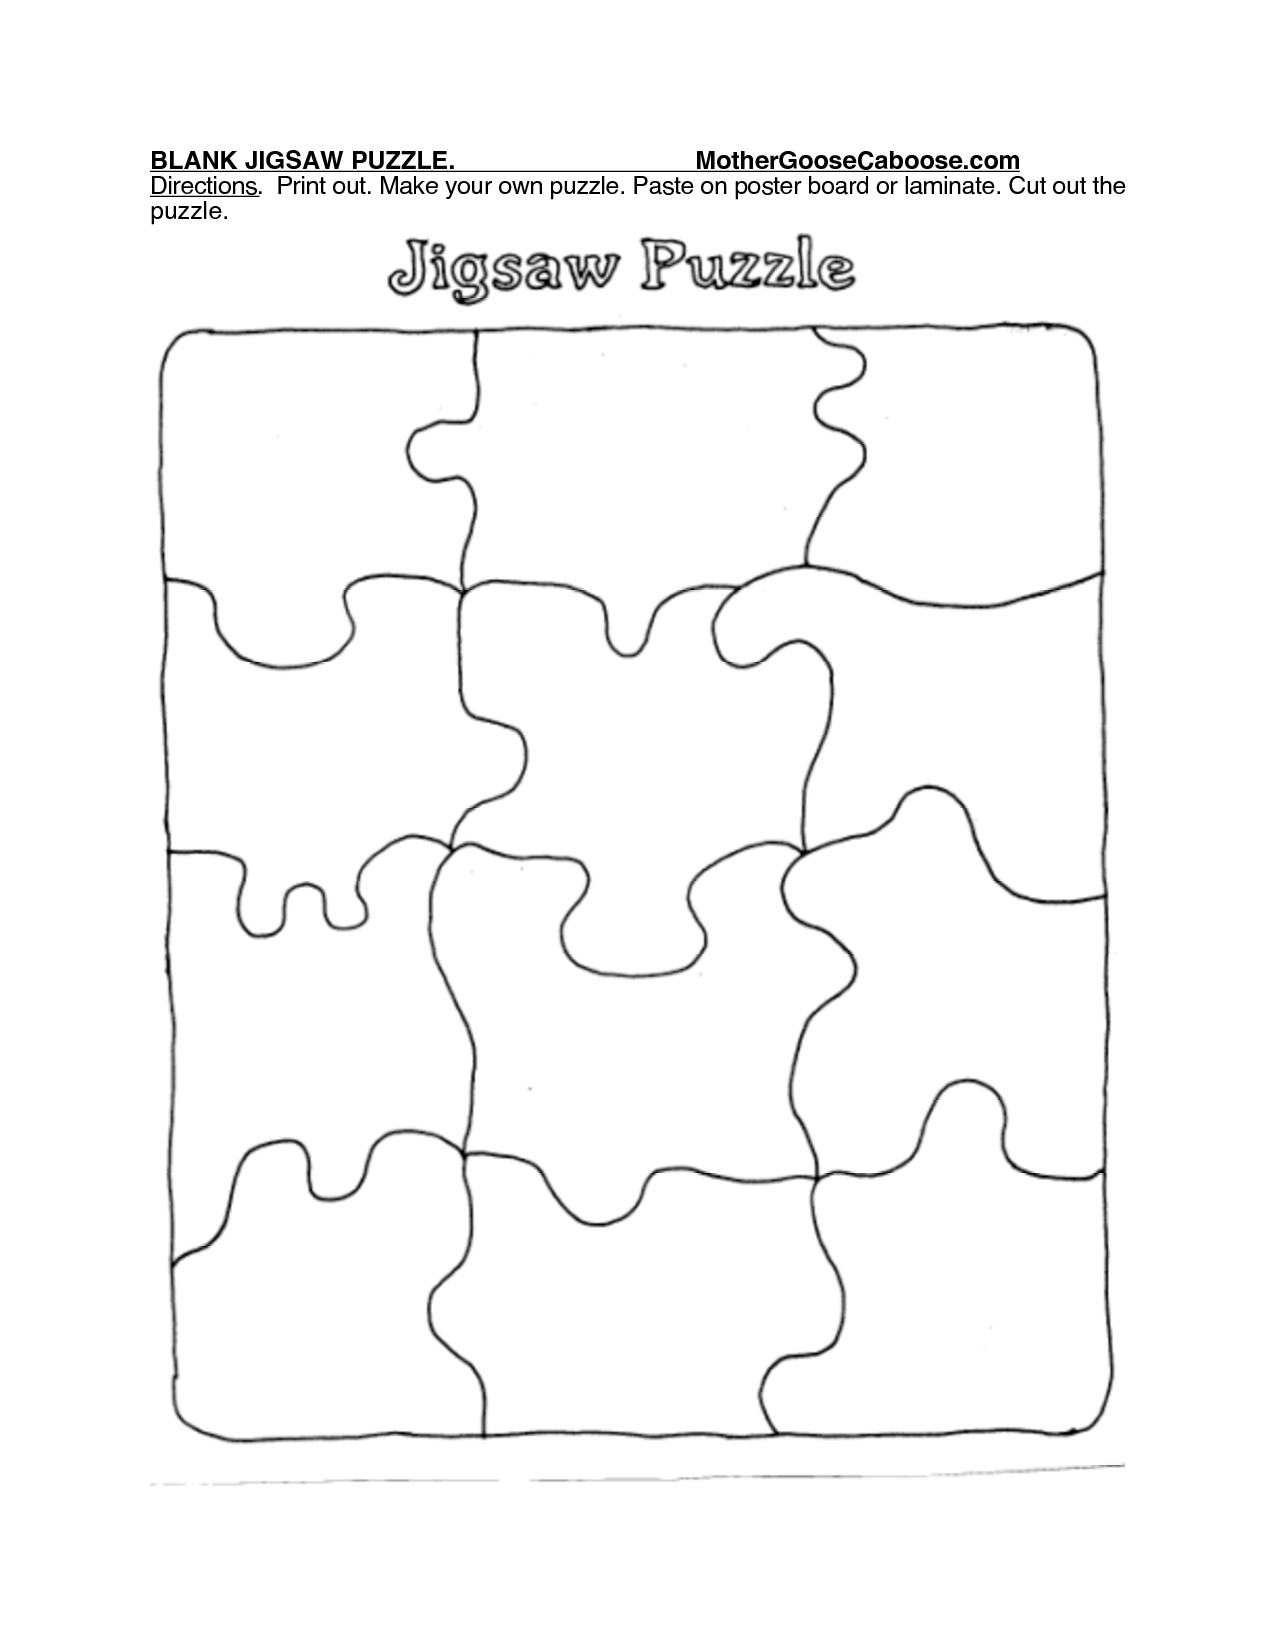 Blank Jigsaw Puzzle. Mothergoosecaboose Directions. Print Out - Print Your Puzzle